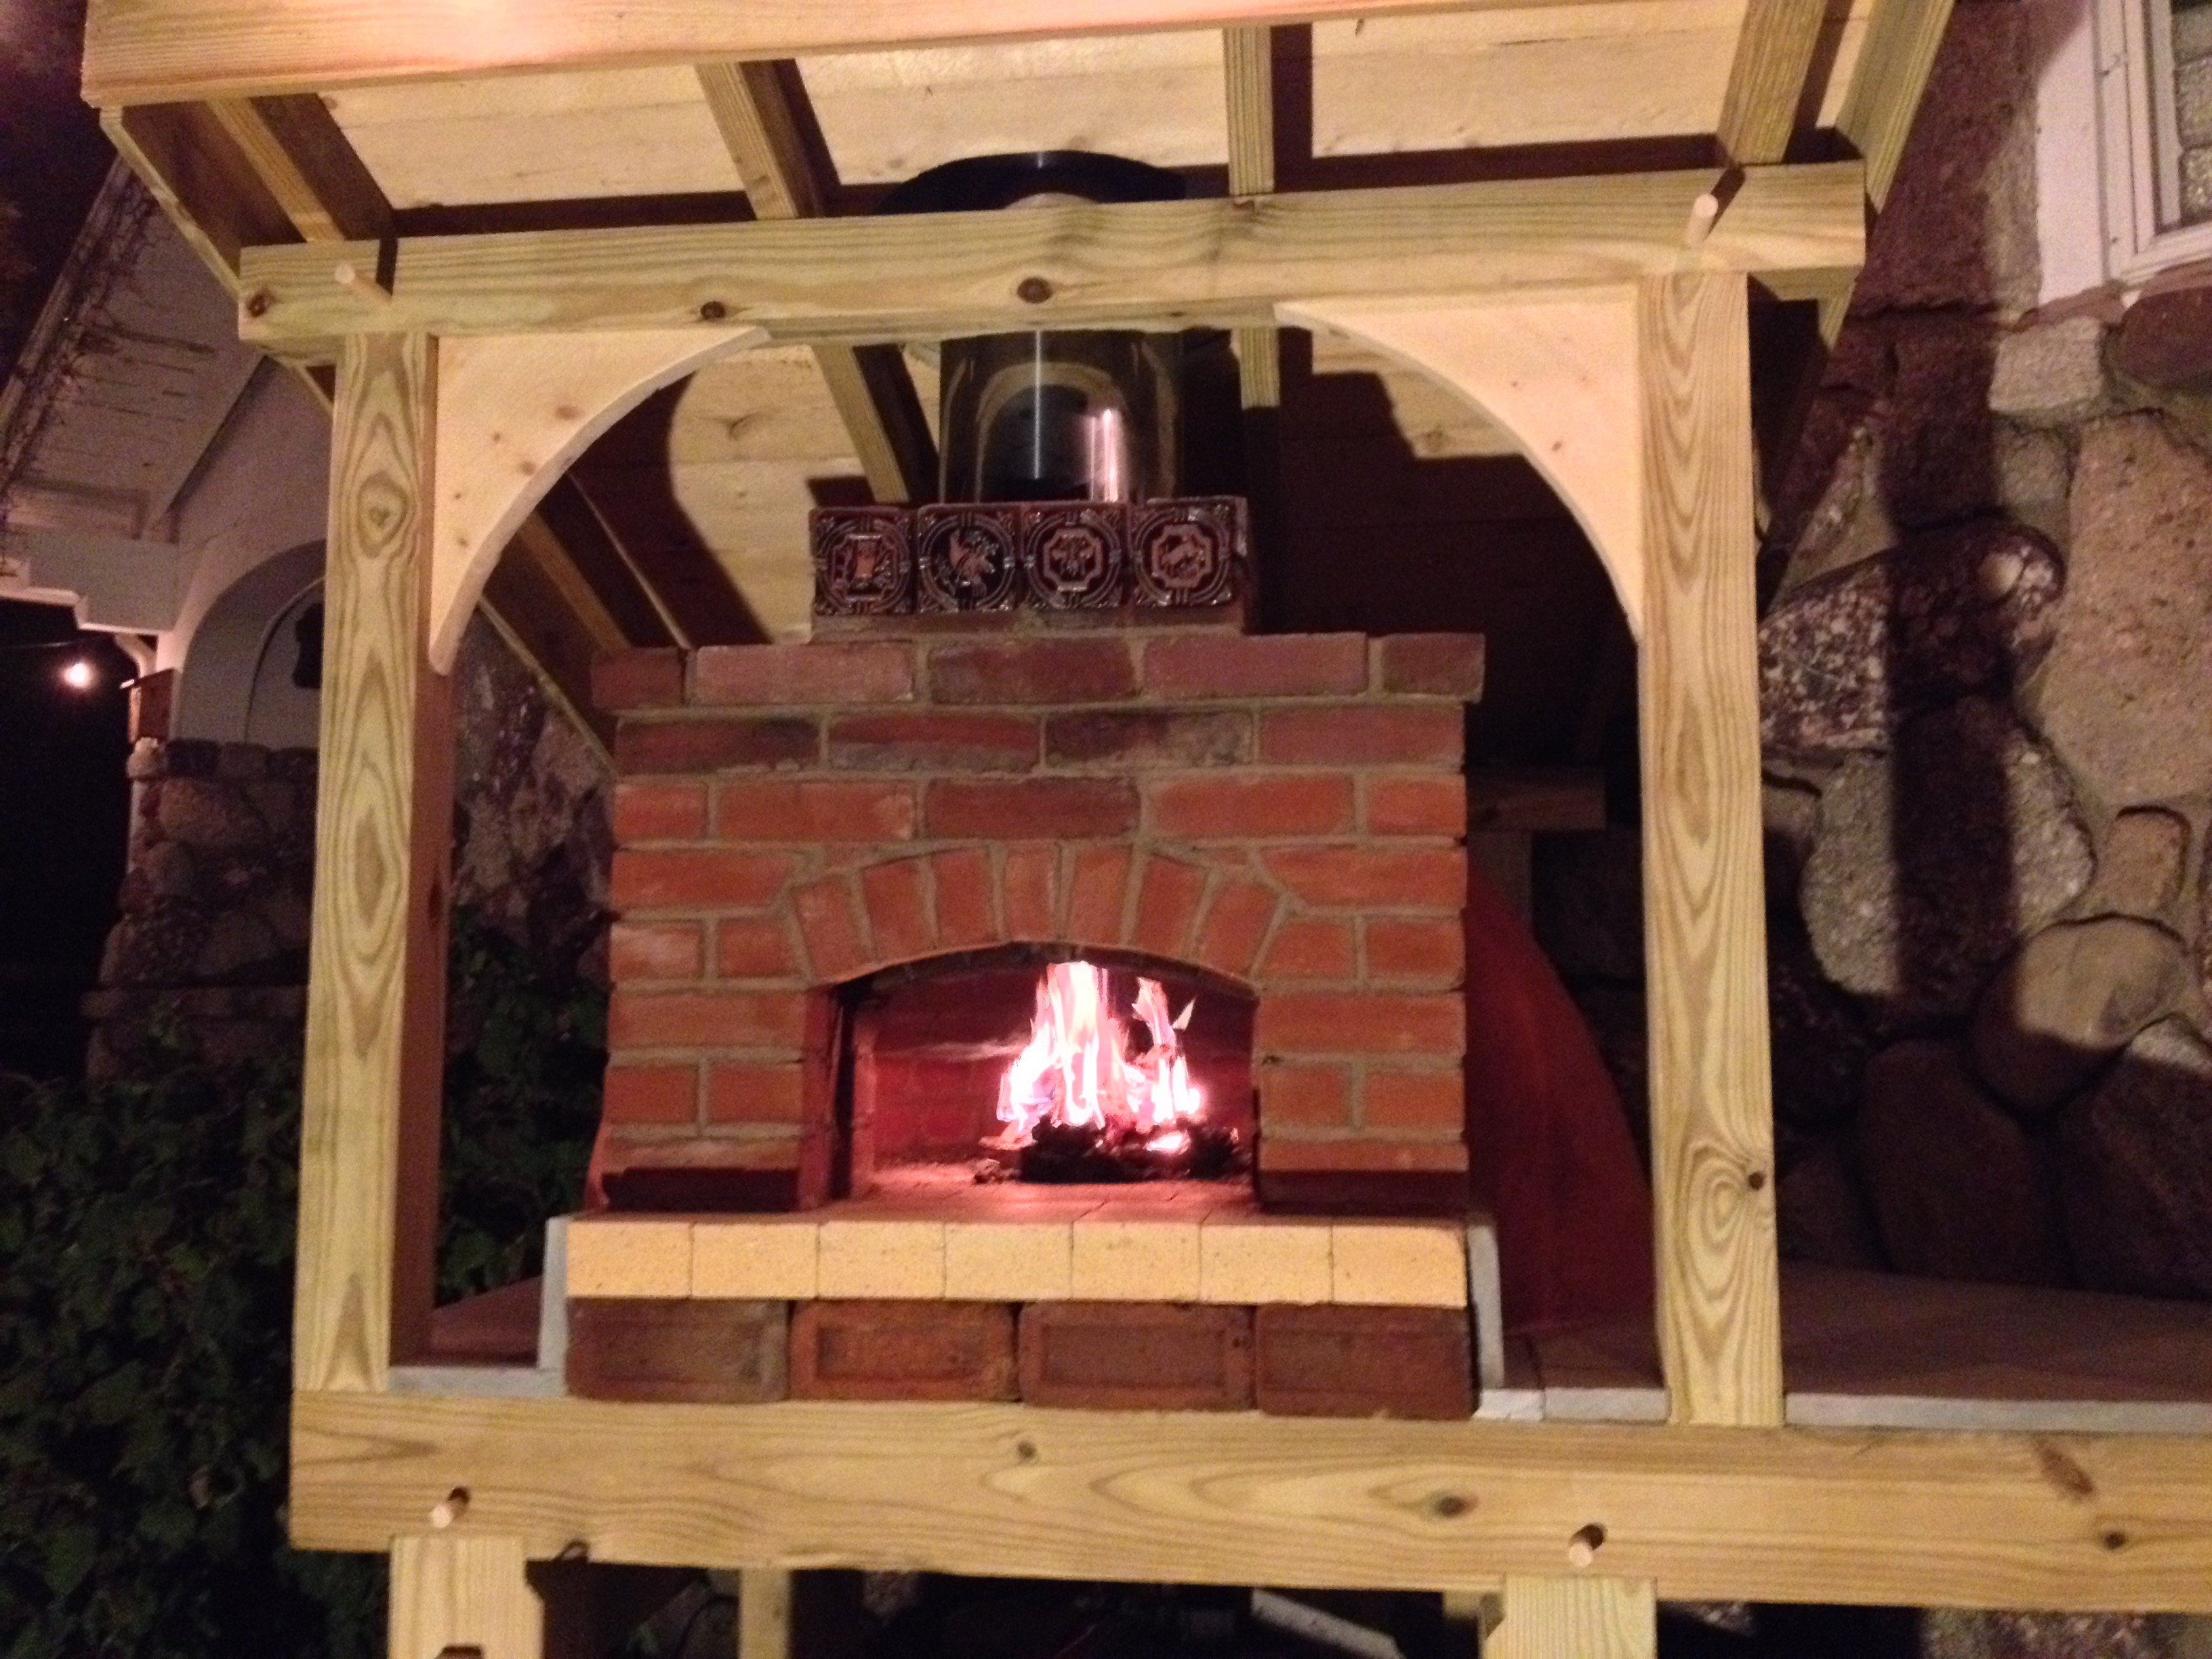 handbuilt custom pizza oven with timber framed base and roof